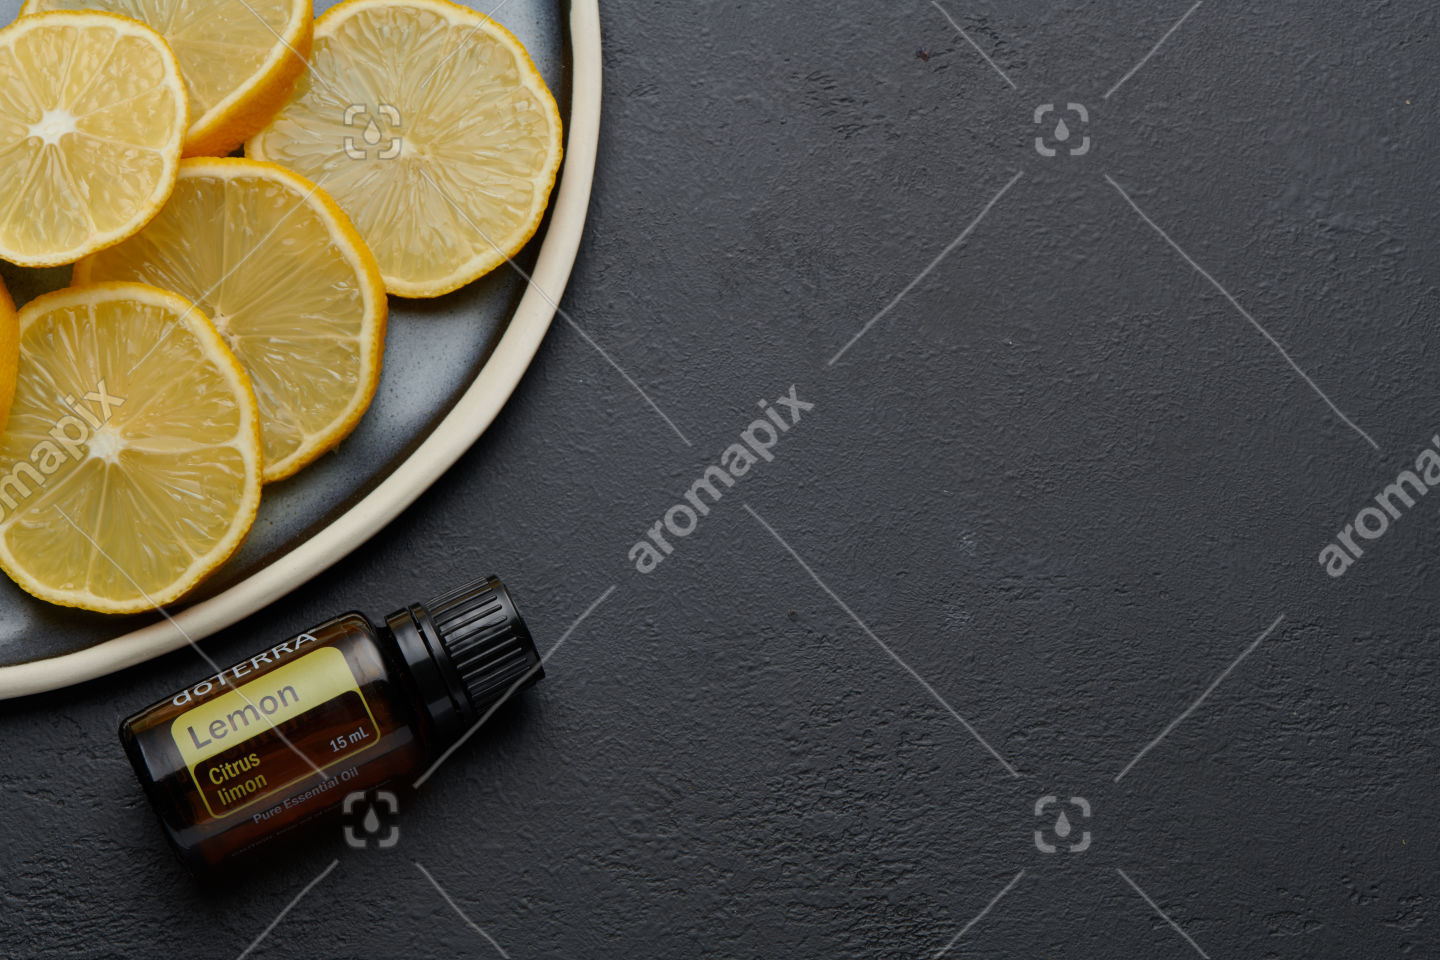 doTERRA Lemon product and slices on blue plate